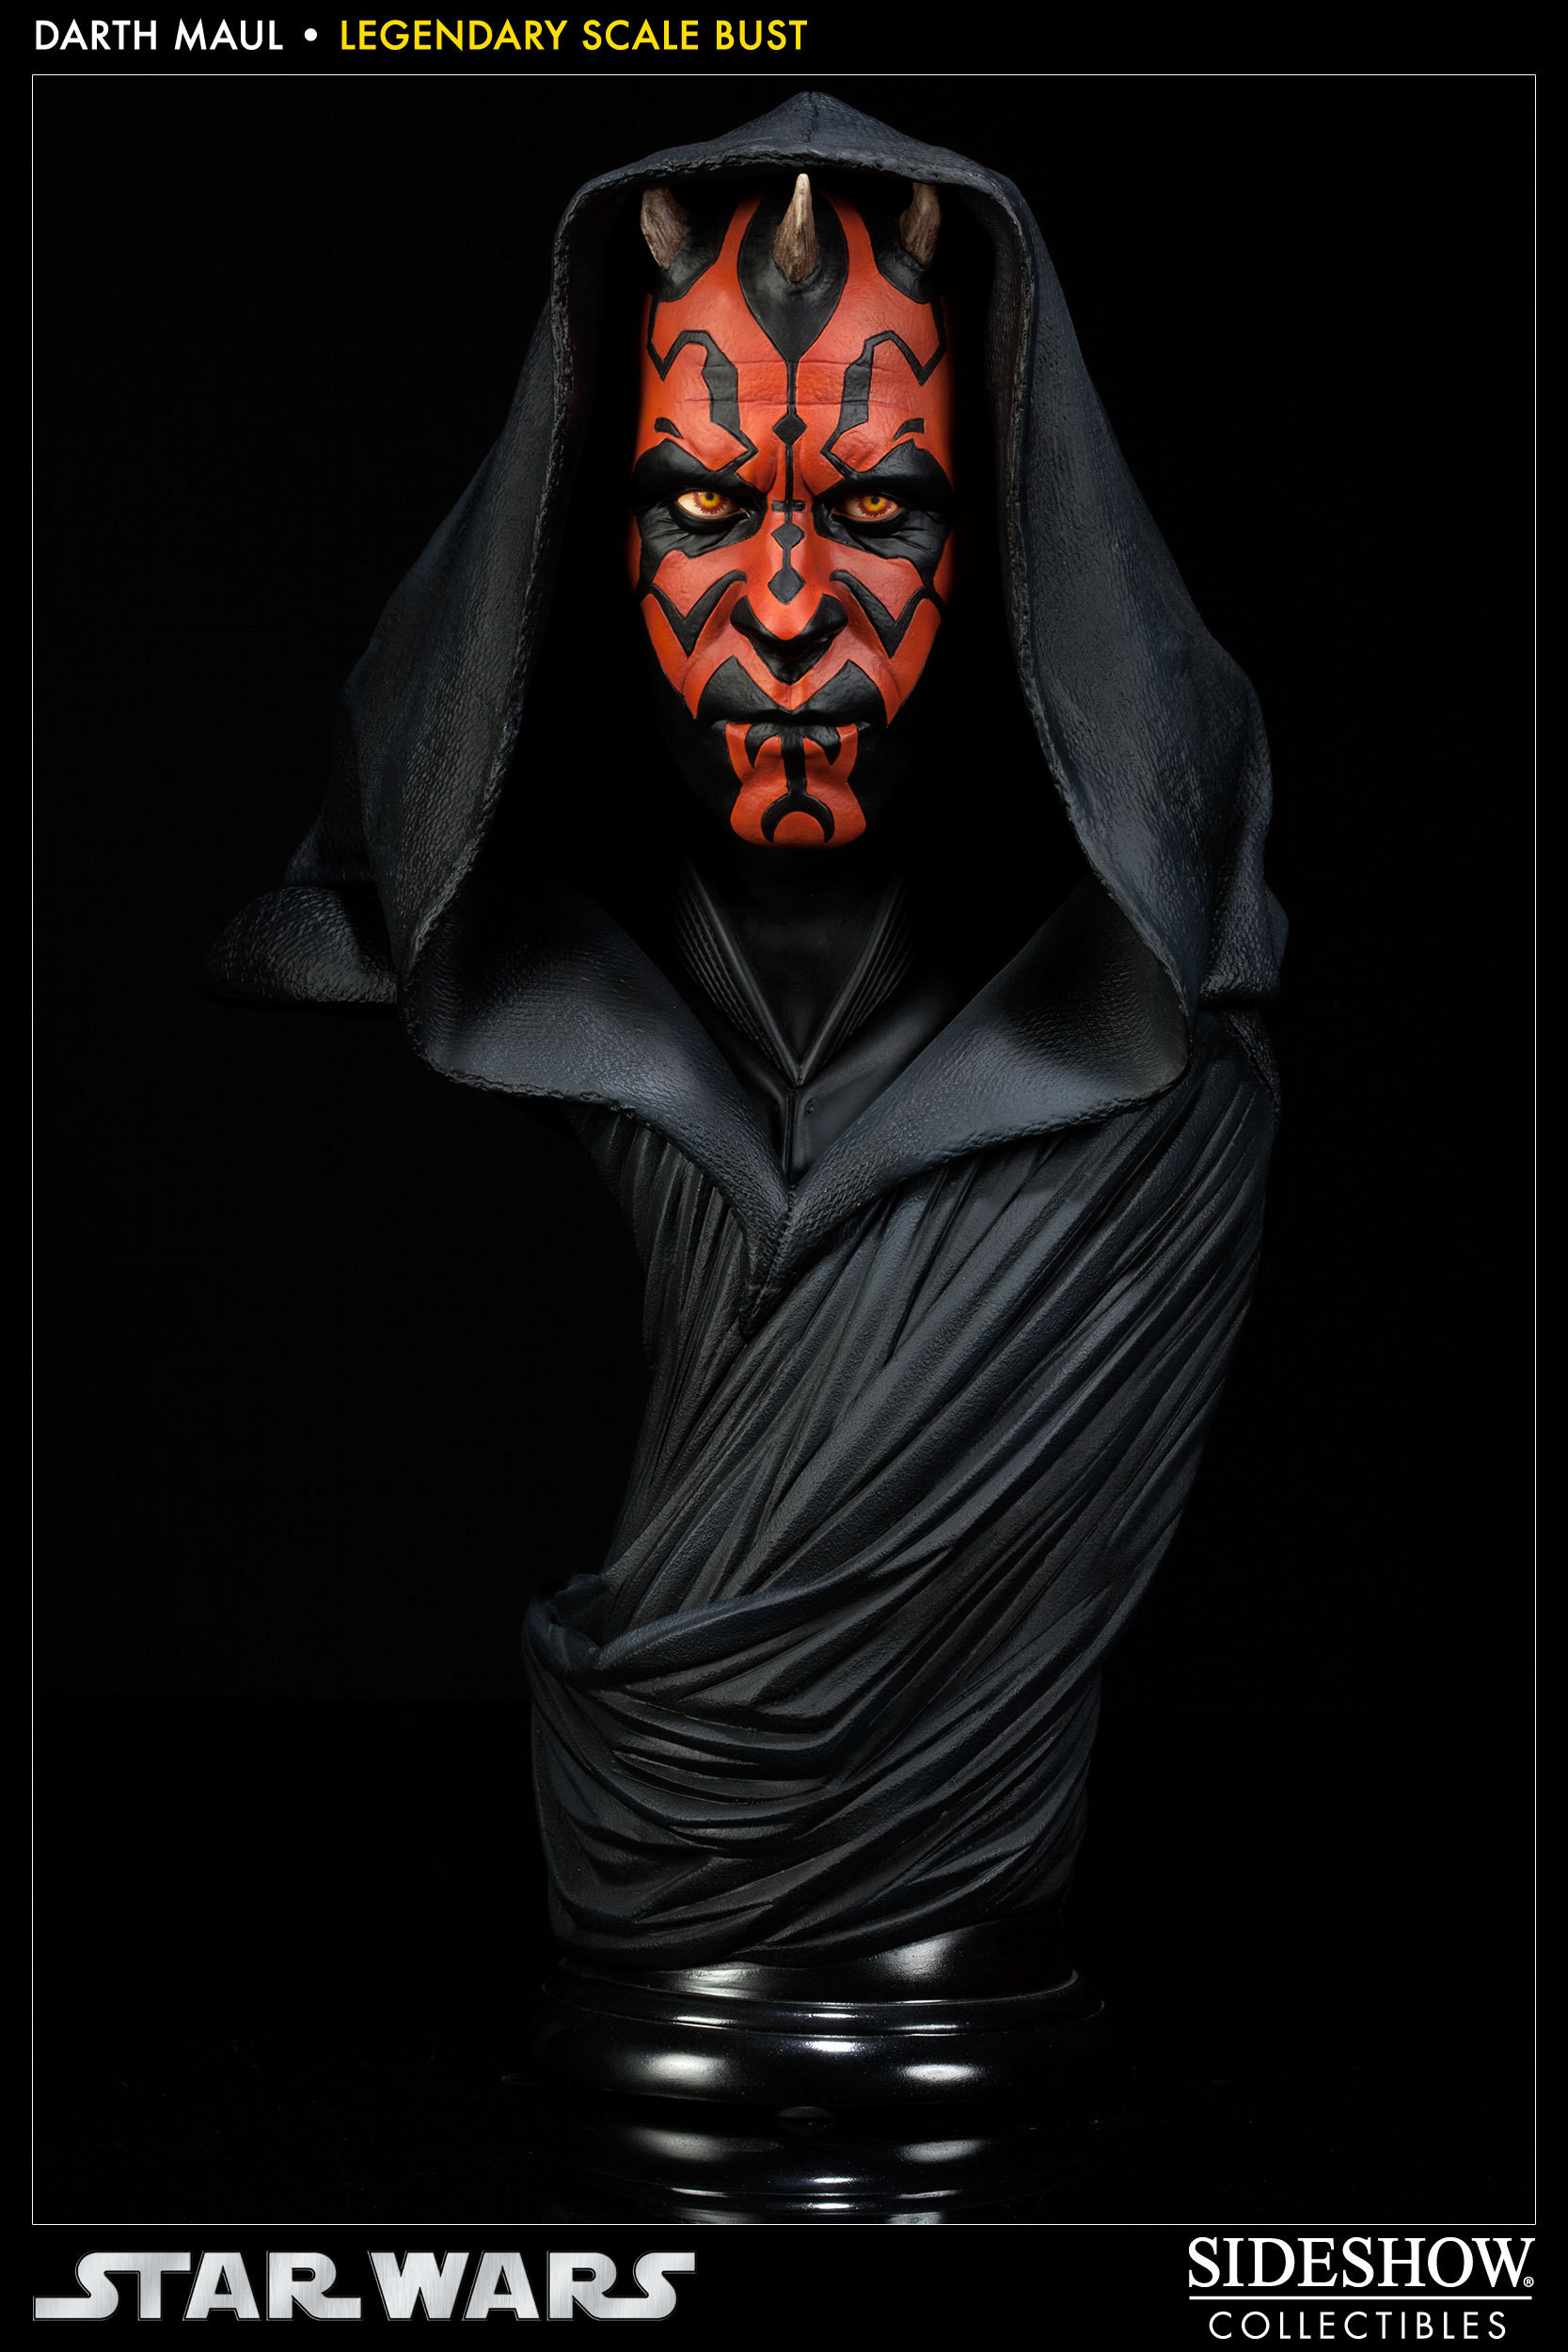 Maul Wallpaper Hd Darth Maul Iphone Wallpapers The Art Mad Wallpapers · Darth  Maul Legendary Scale Bust Darth Maul Legendary Scale Bust …